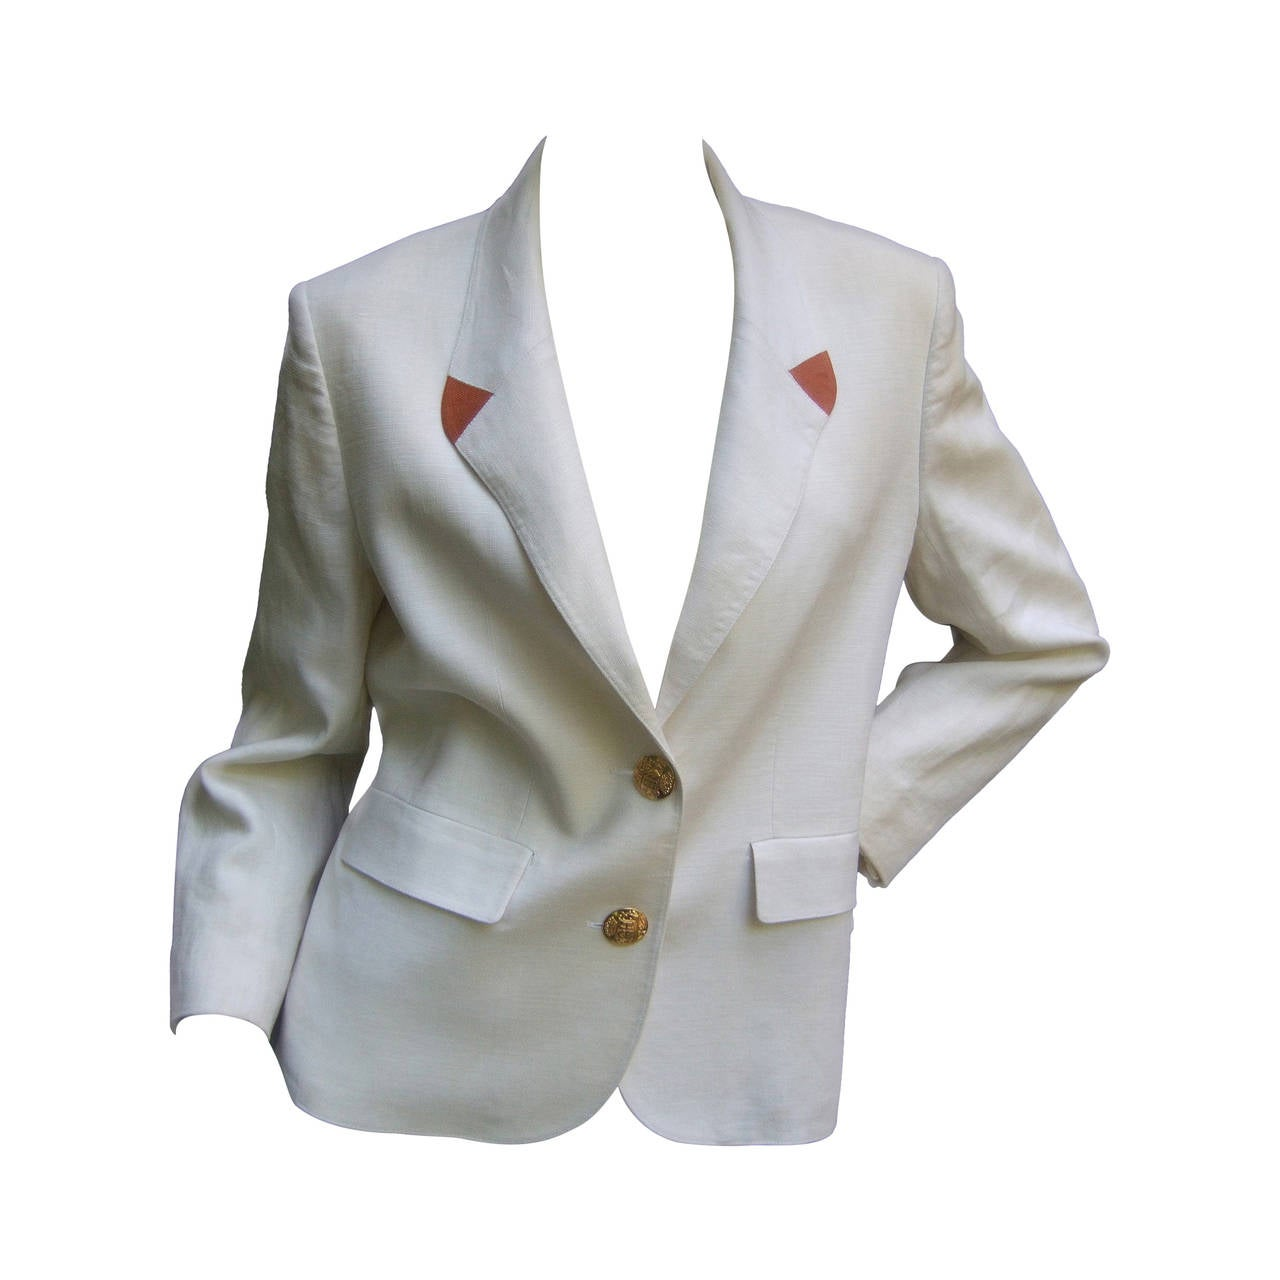 Hermes Paris Crisp White Linen Jacket Made in France c 1980s